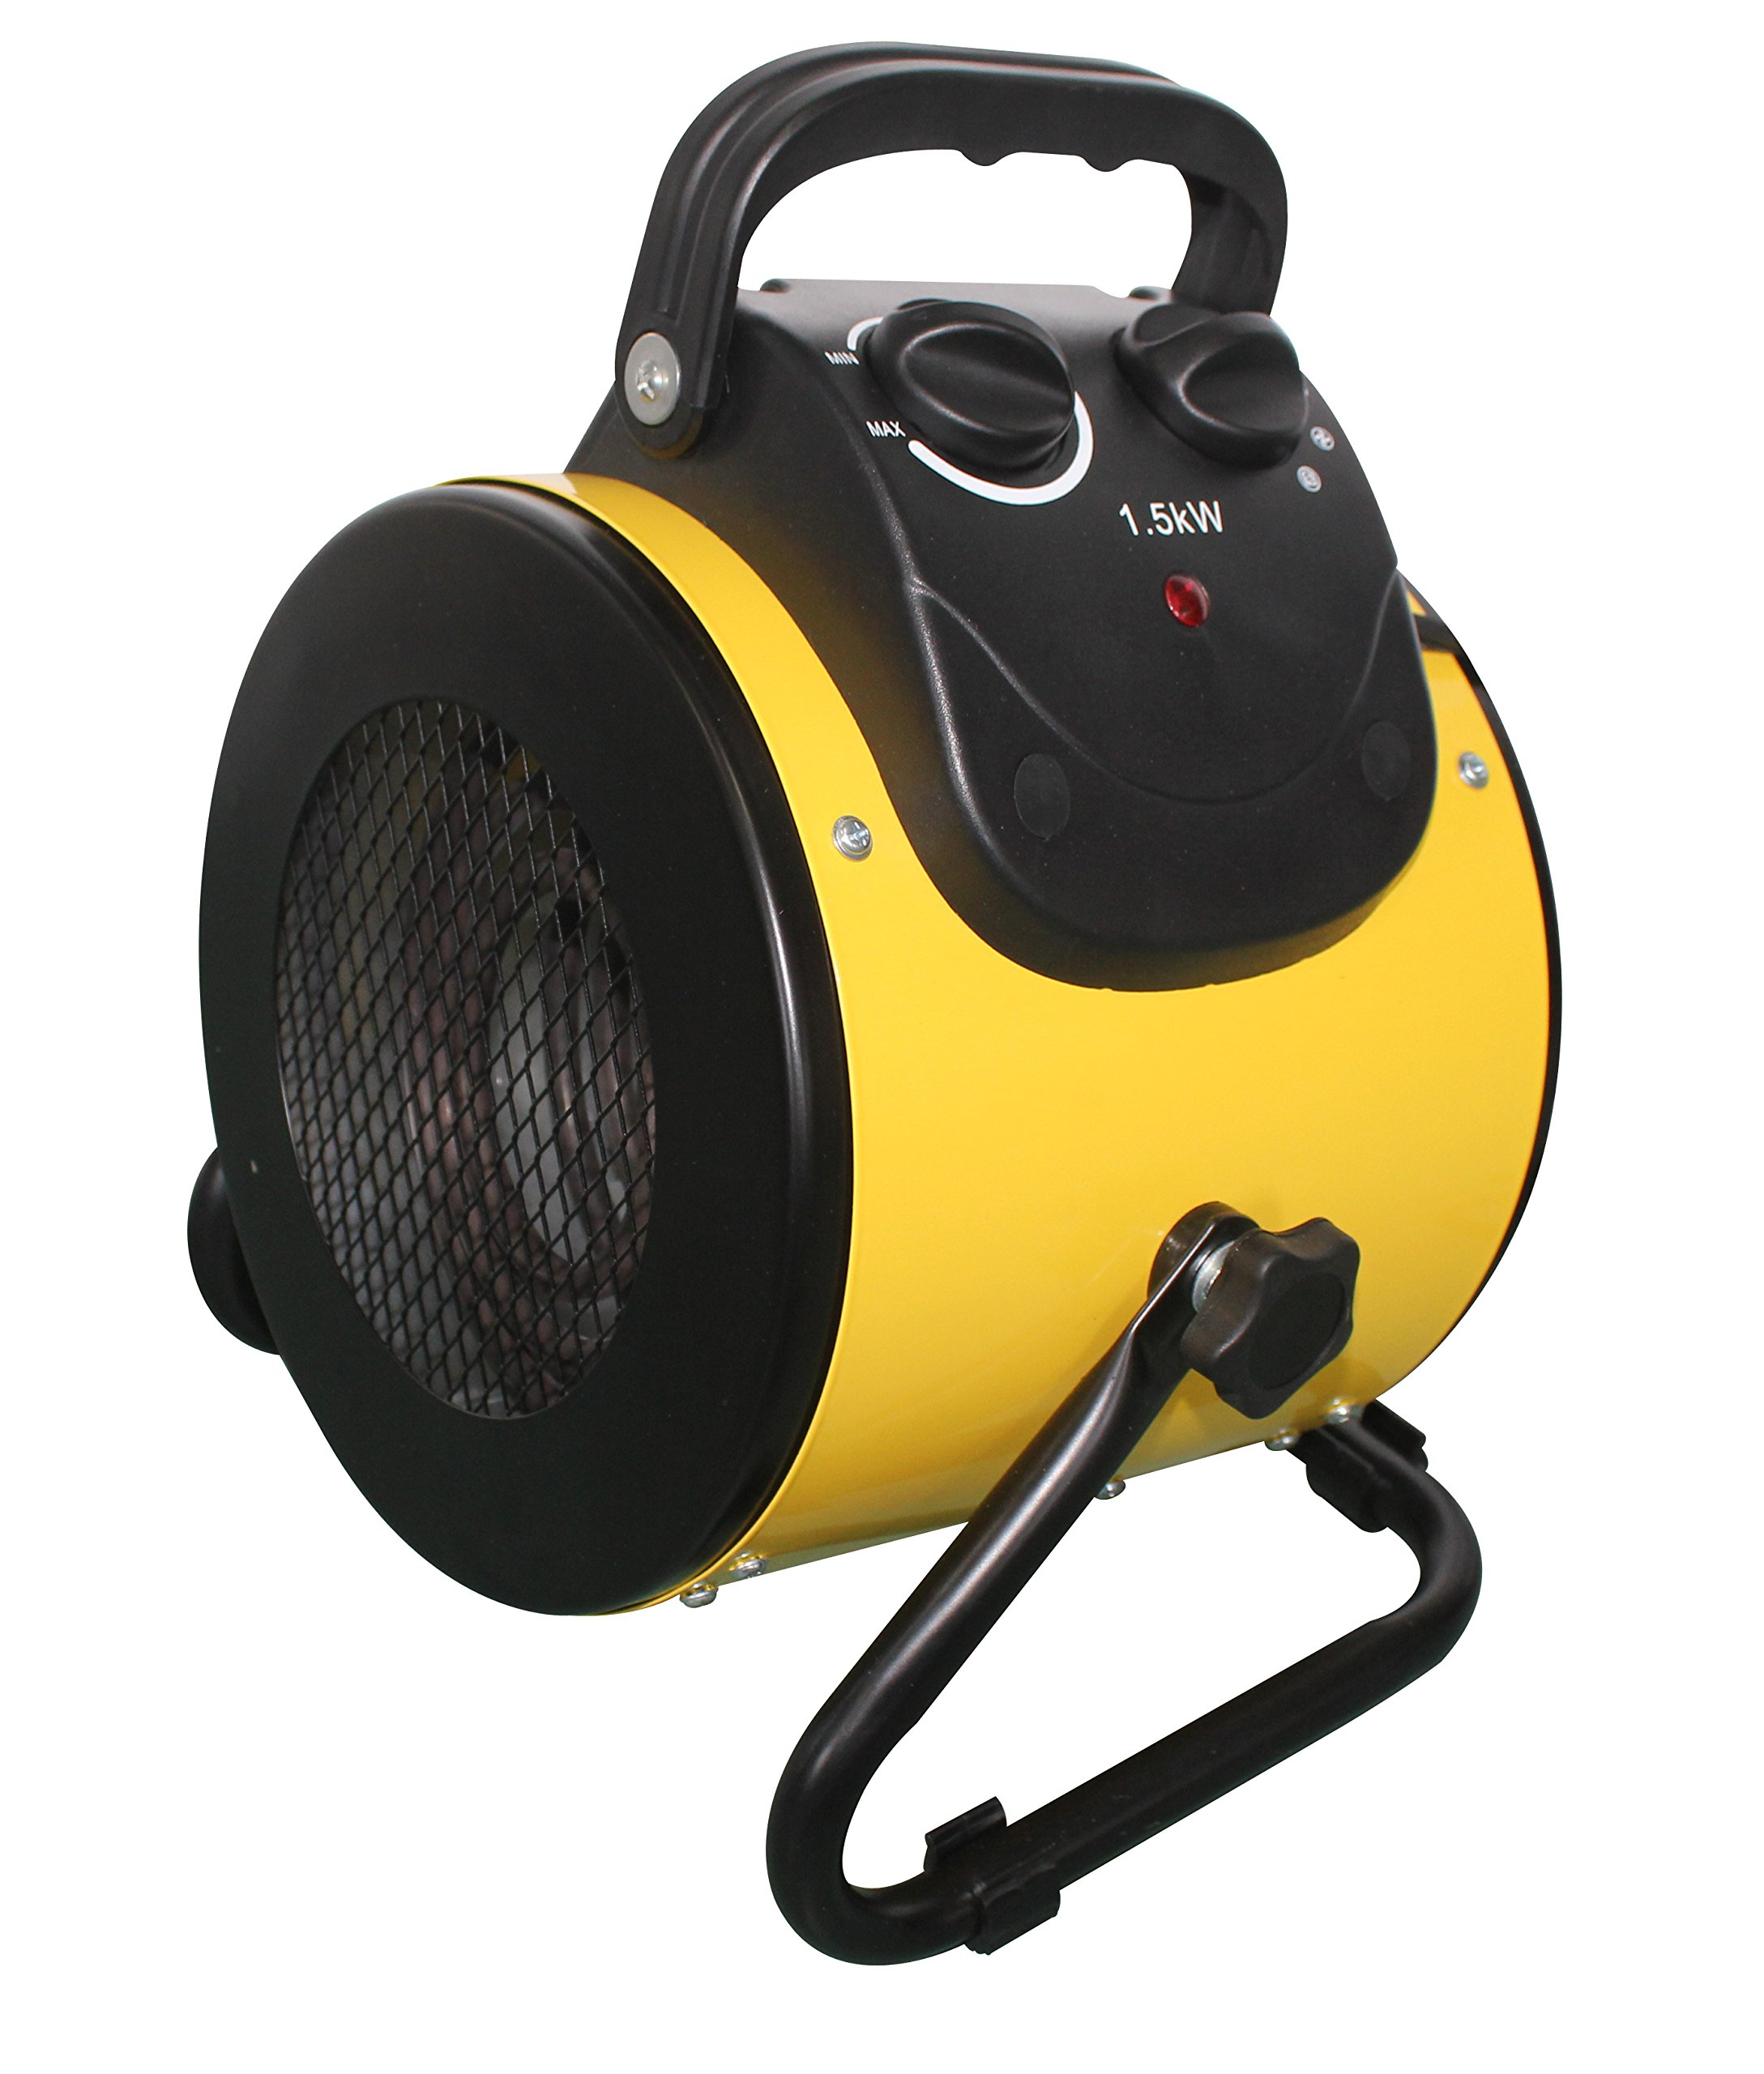 Hiland HIL-BG-E2B Electric Forced Air Heater, Variable 25/1500 Watts, w/Stand, Circular, Yellow by Hiland